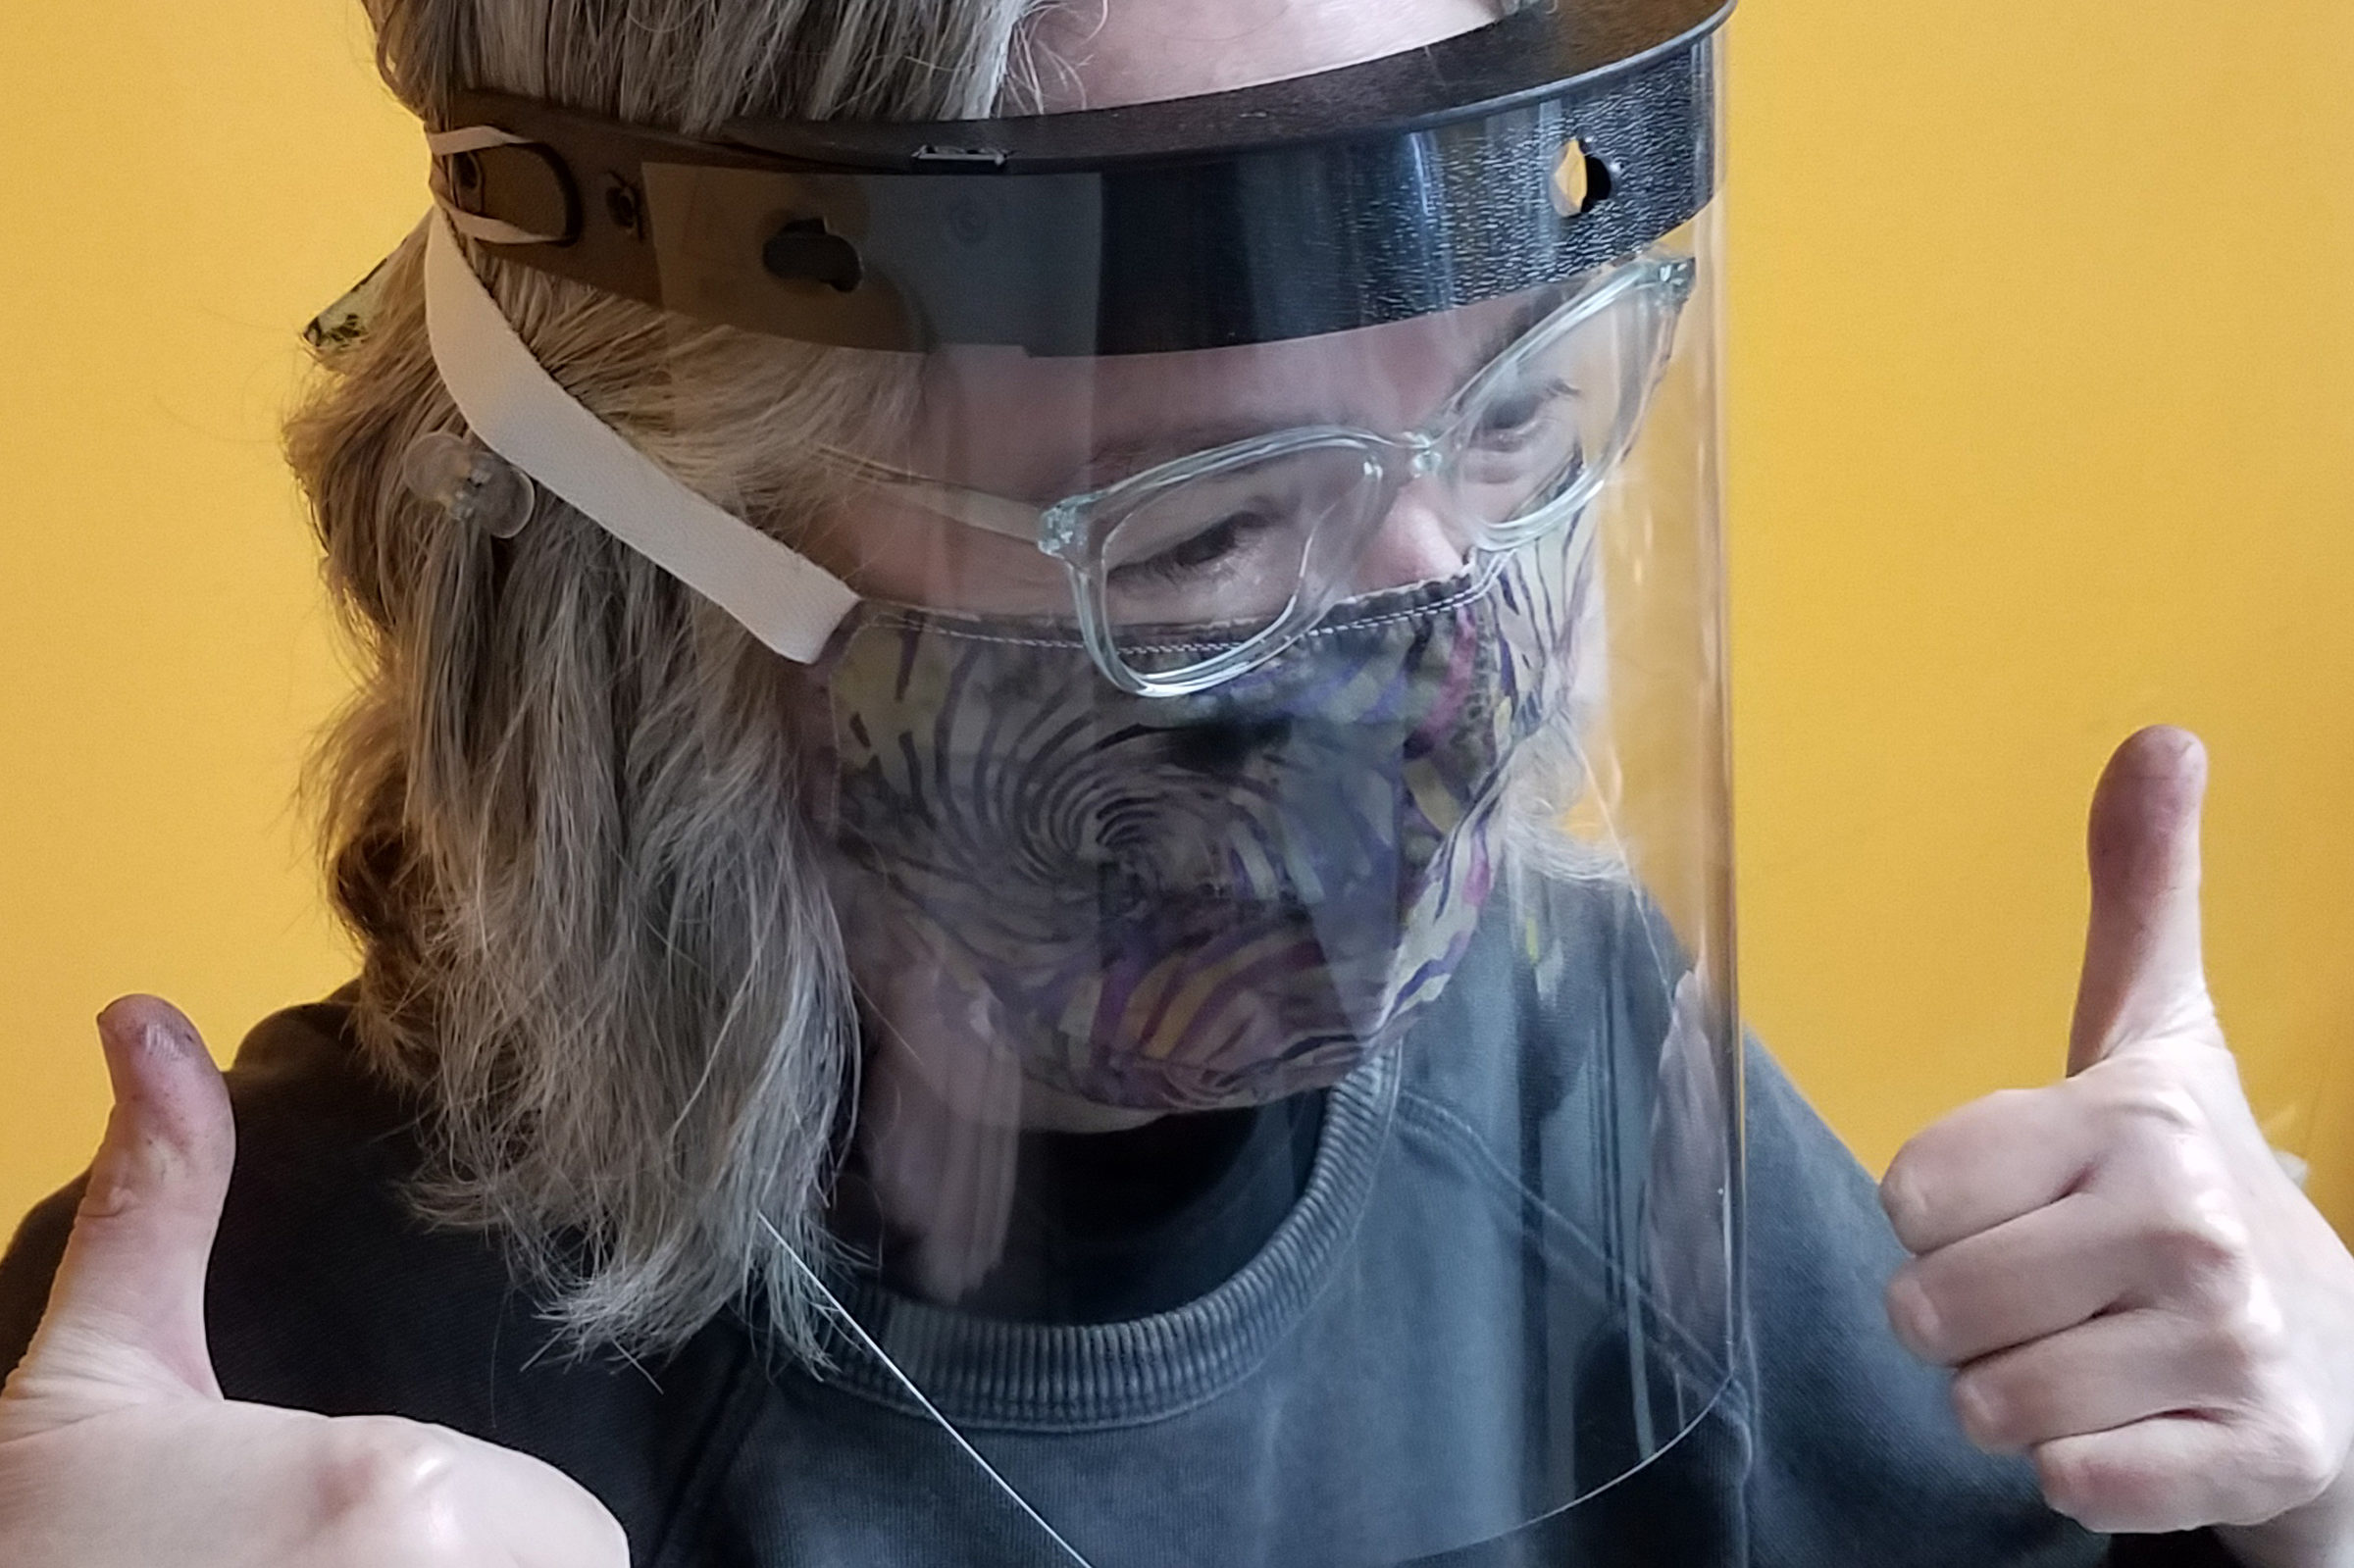 a woman wearing a face shield